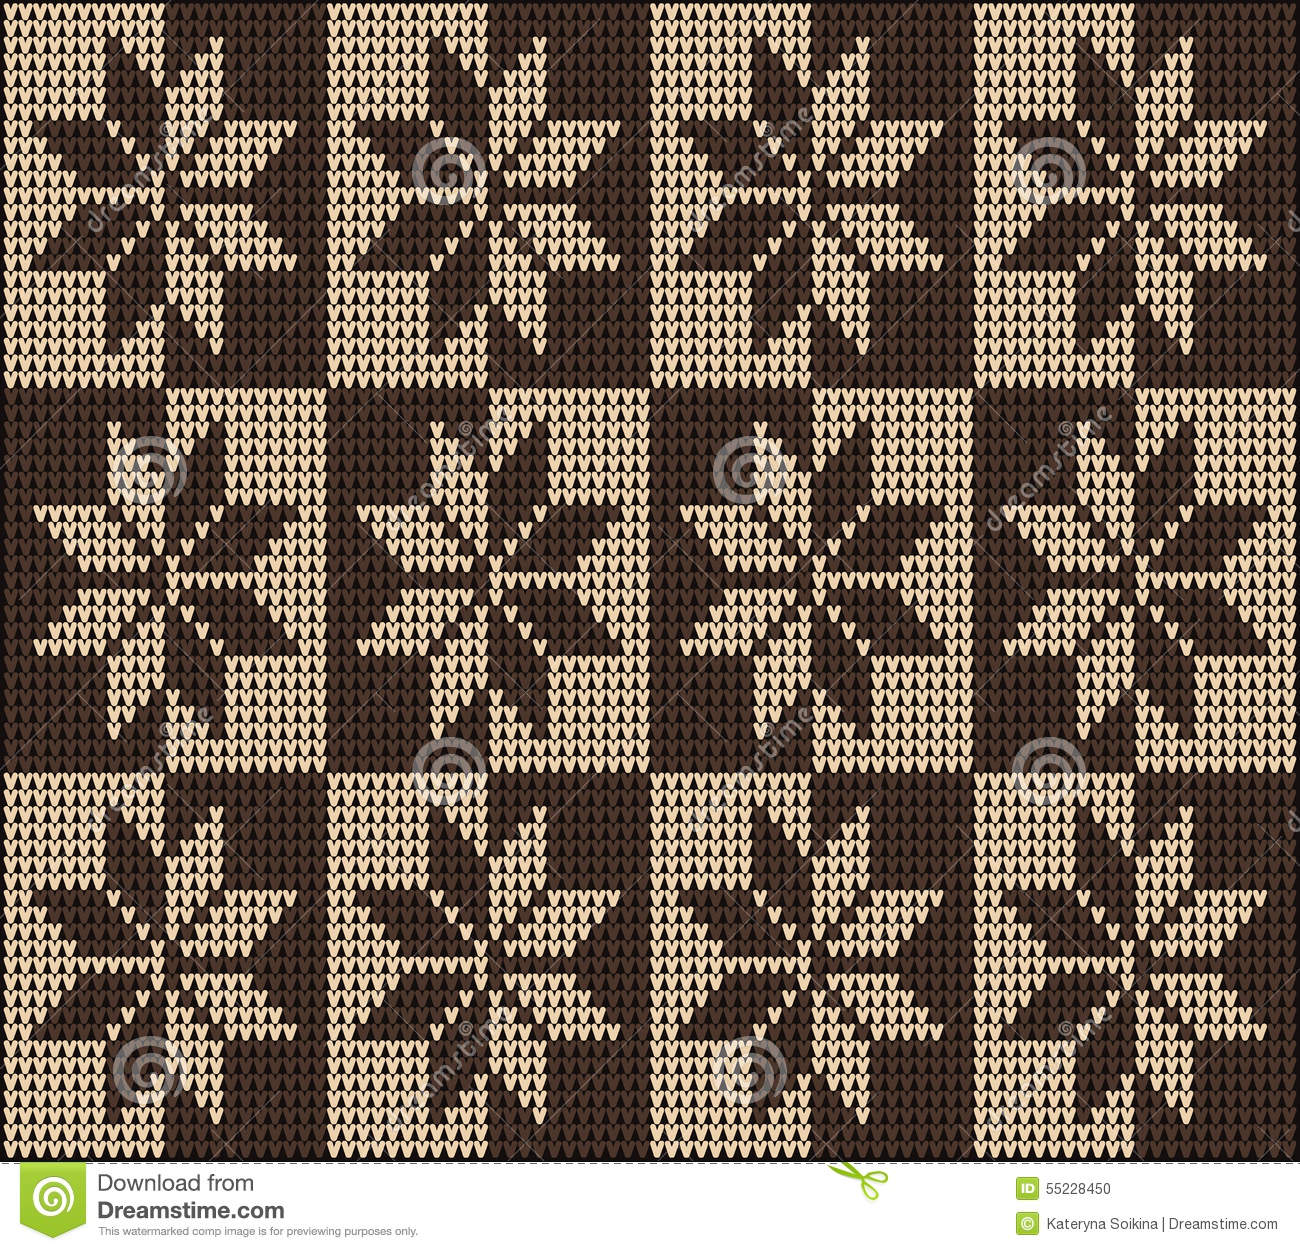 Knitting Pattern Seamless Sweater Brown Ornament Stock Vector ...